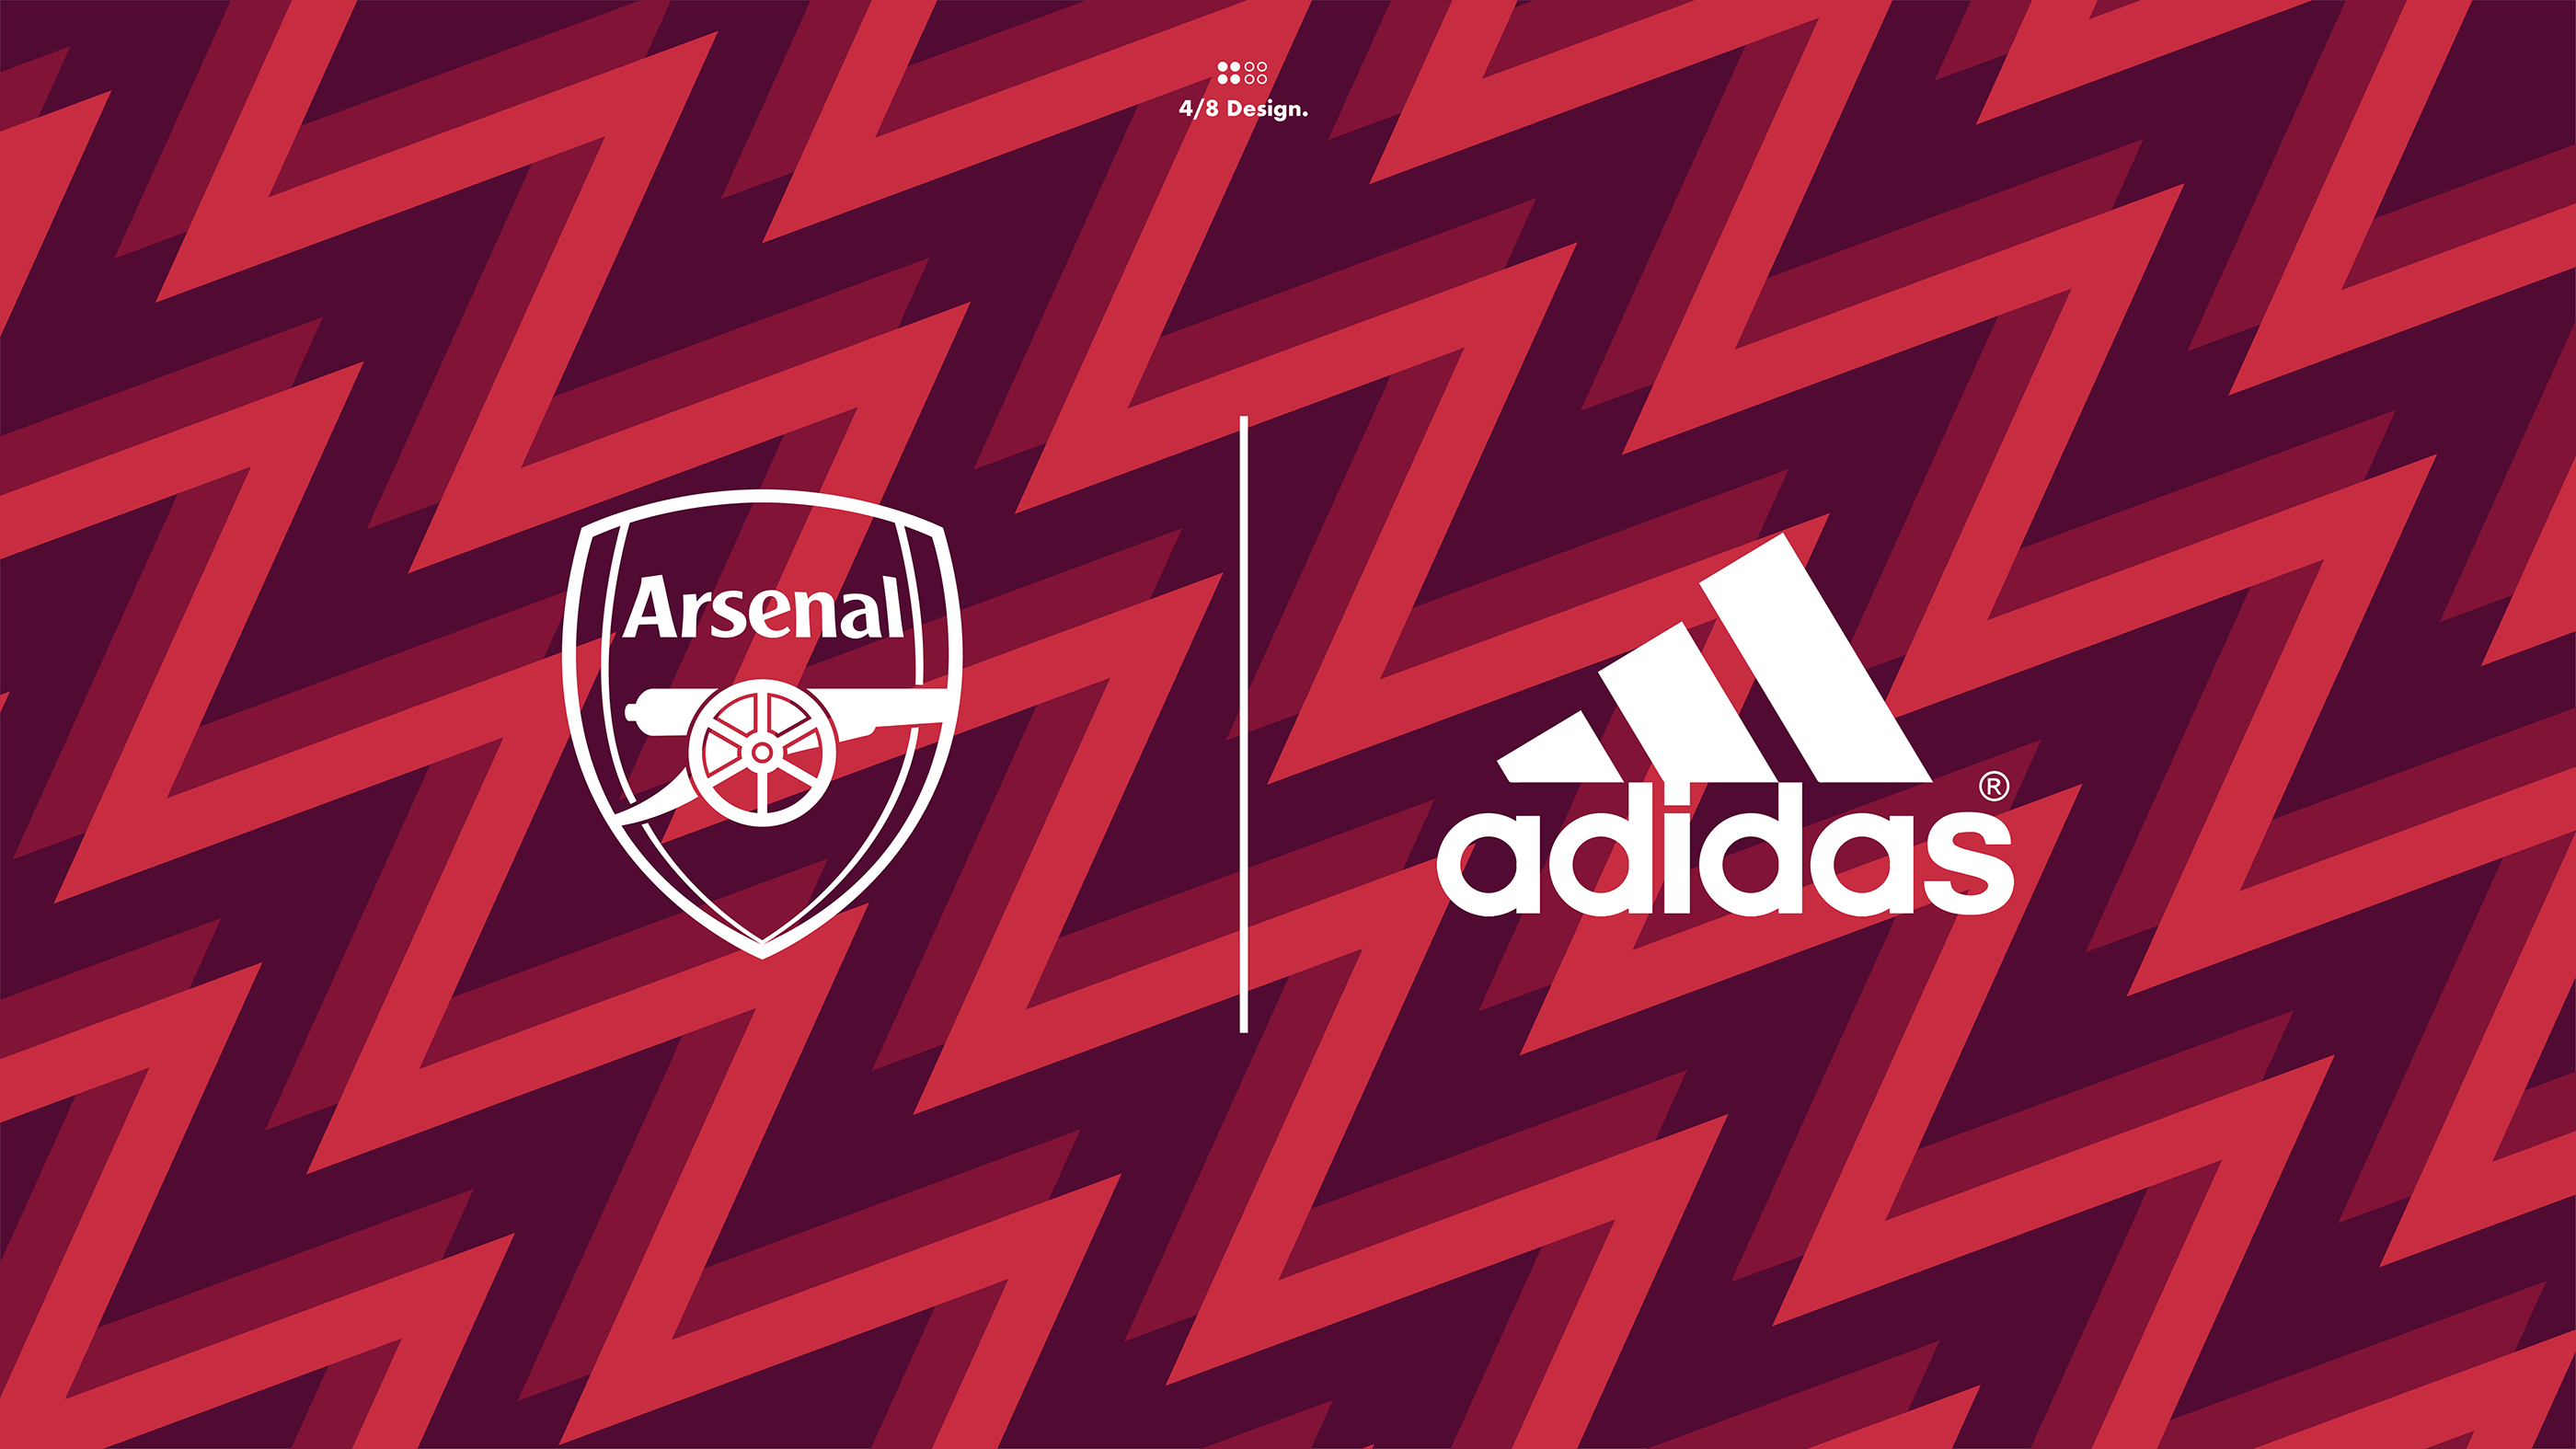 arsenal adidas wallpapers wallpaper cave